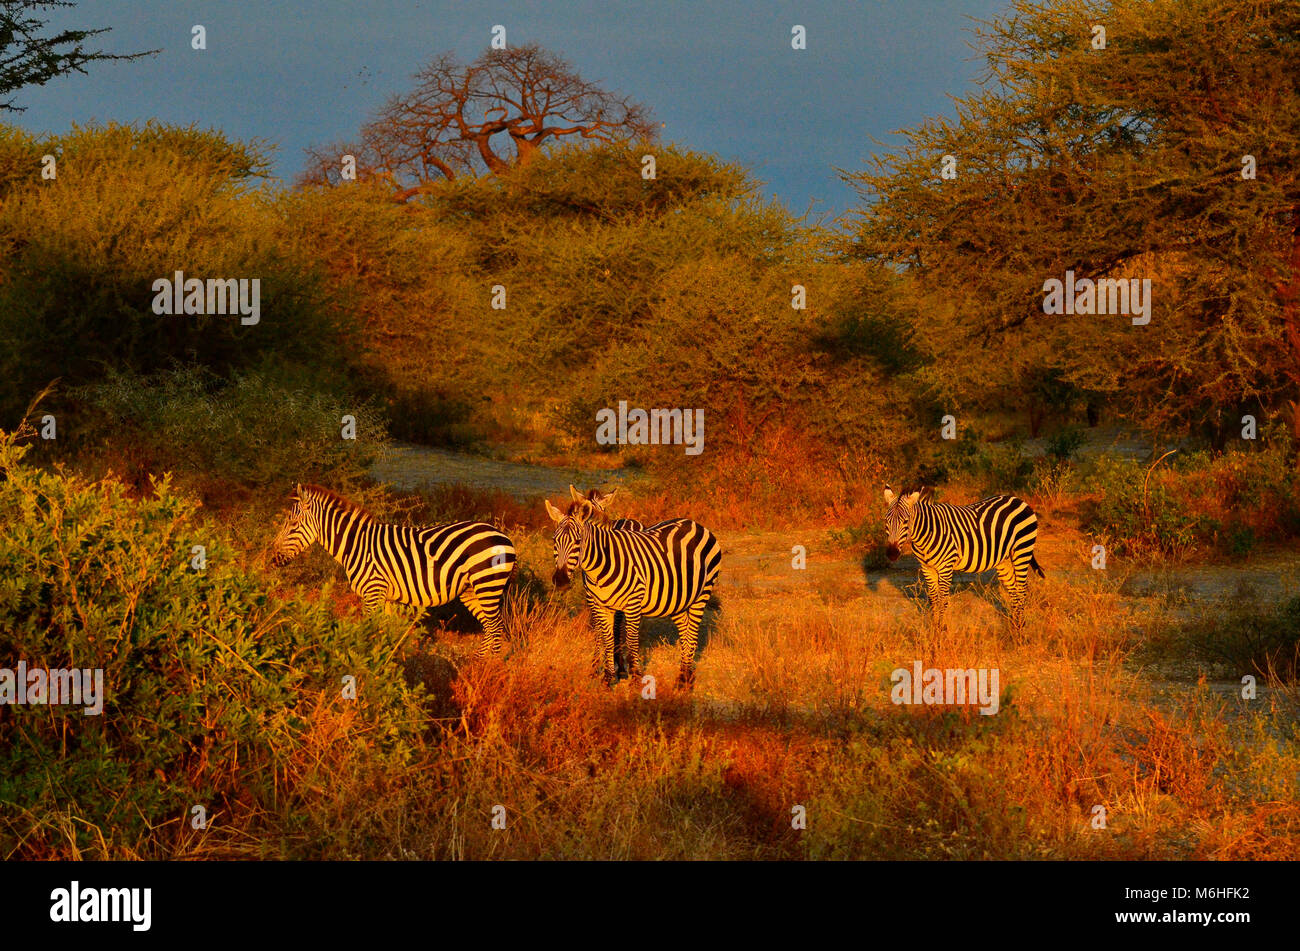 Tarangire national park is an excellent game viewing destination in Tanzania. Zebra at dawn - Stock Image